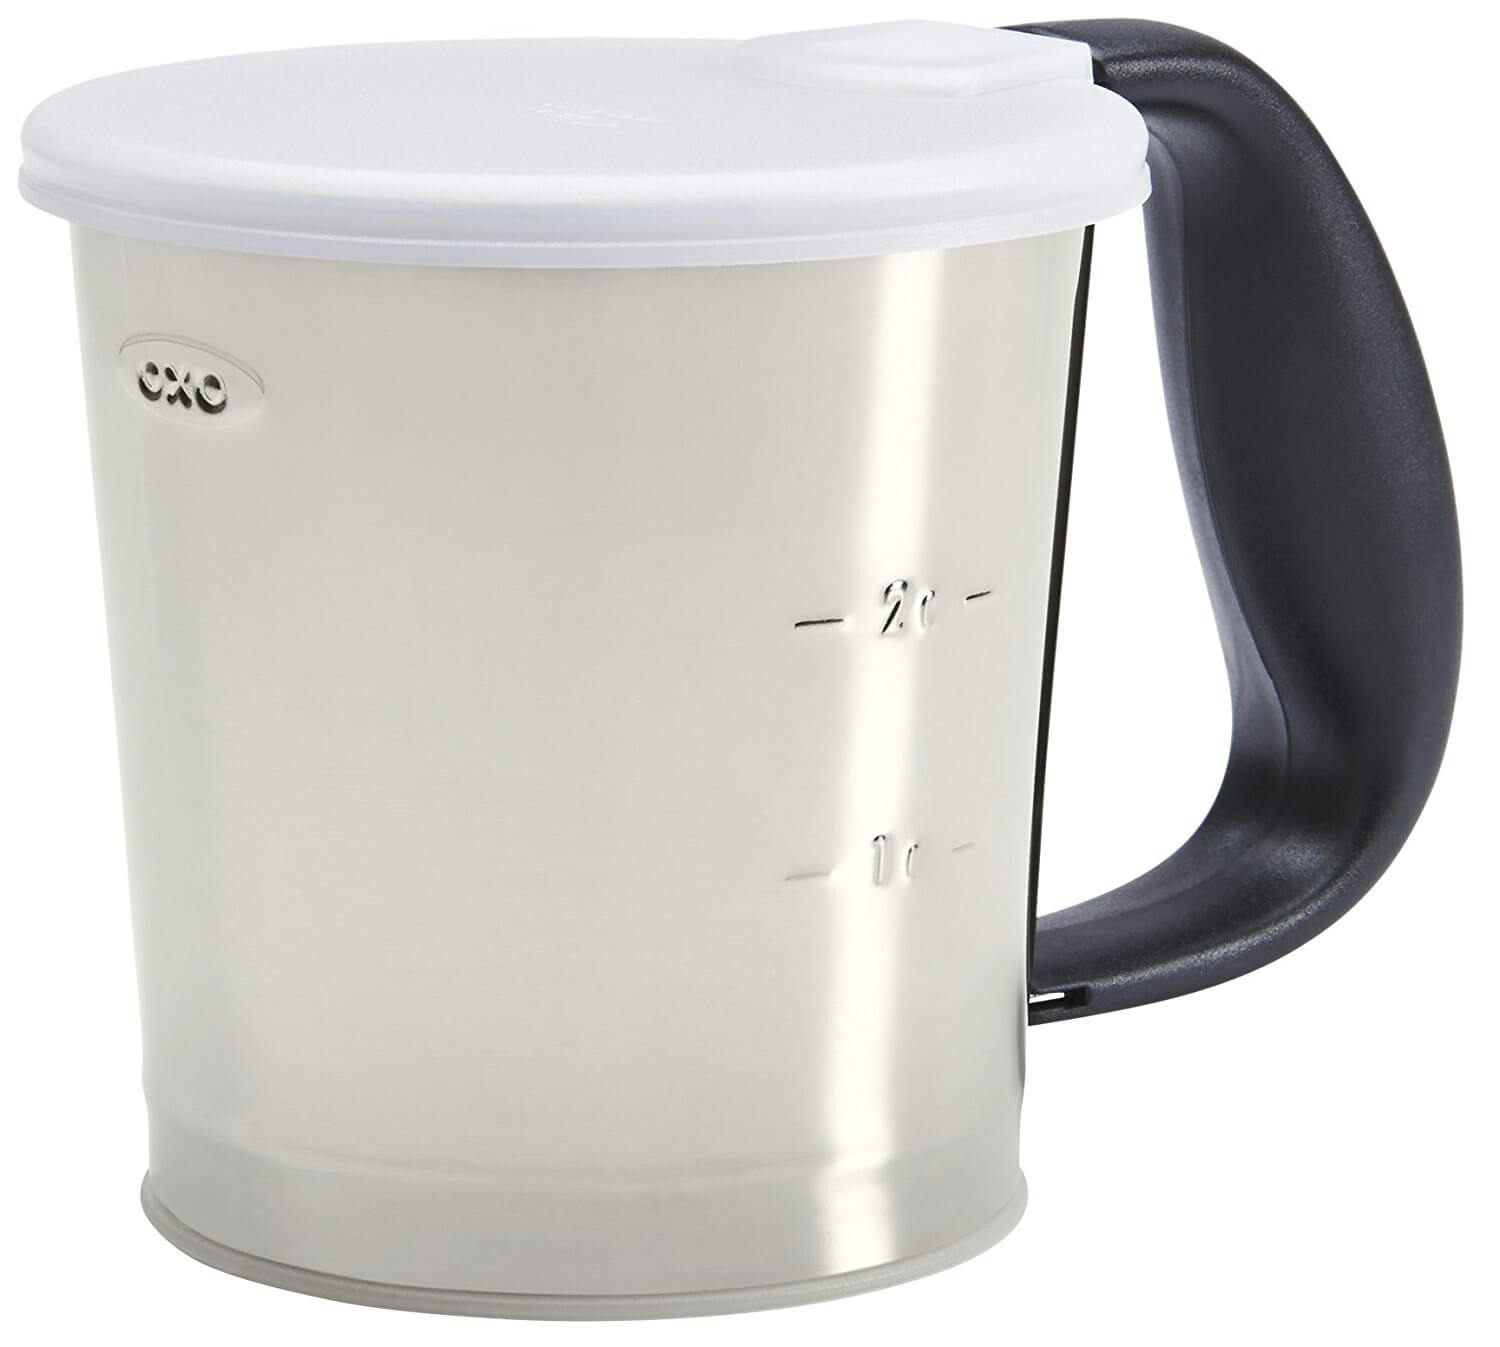 OXO Good Grips 3 Cup Stainless Steel Flour Sifter (A)